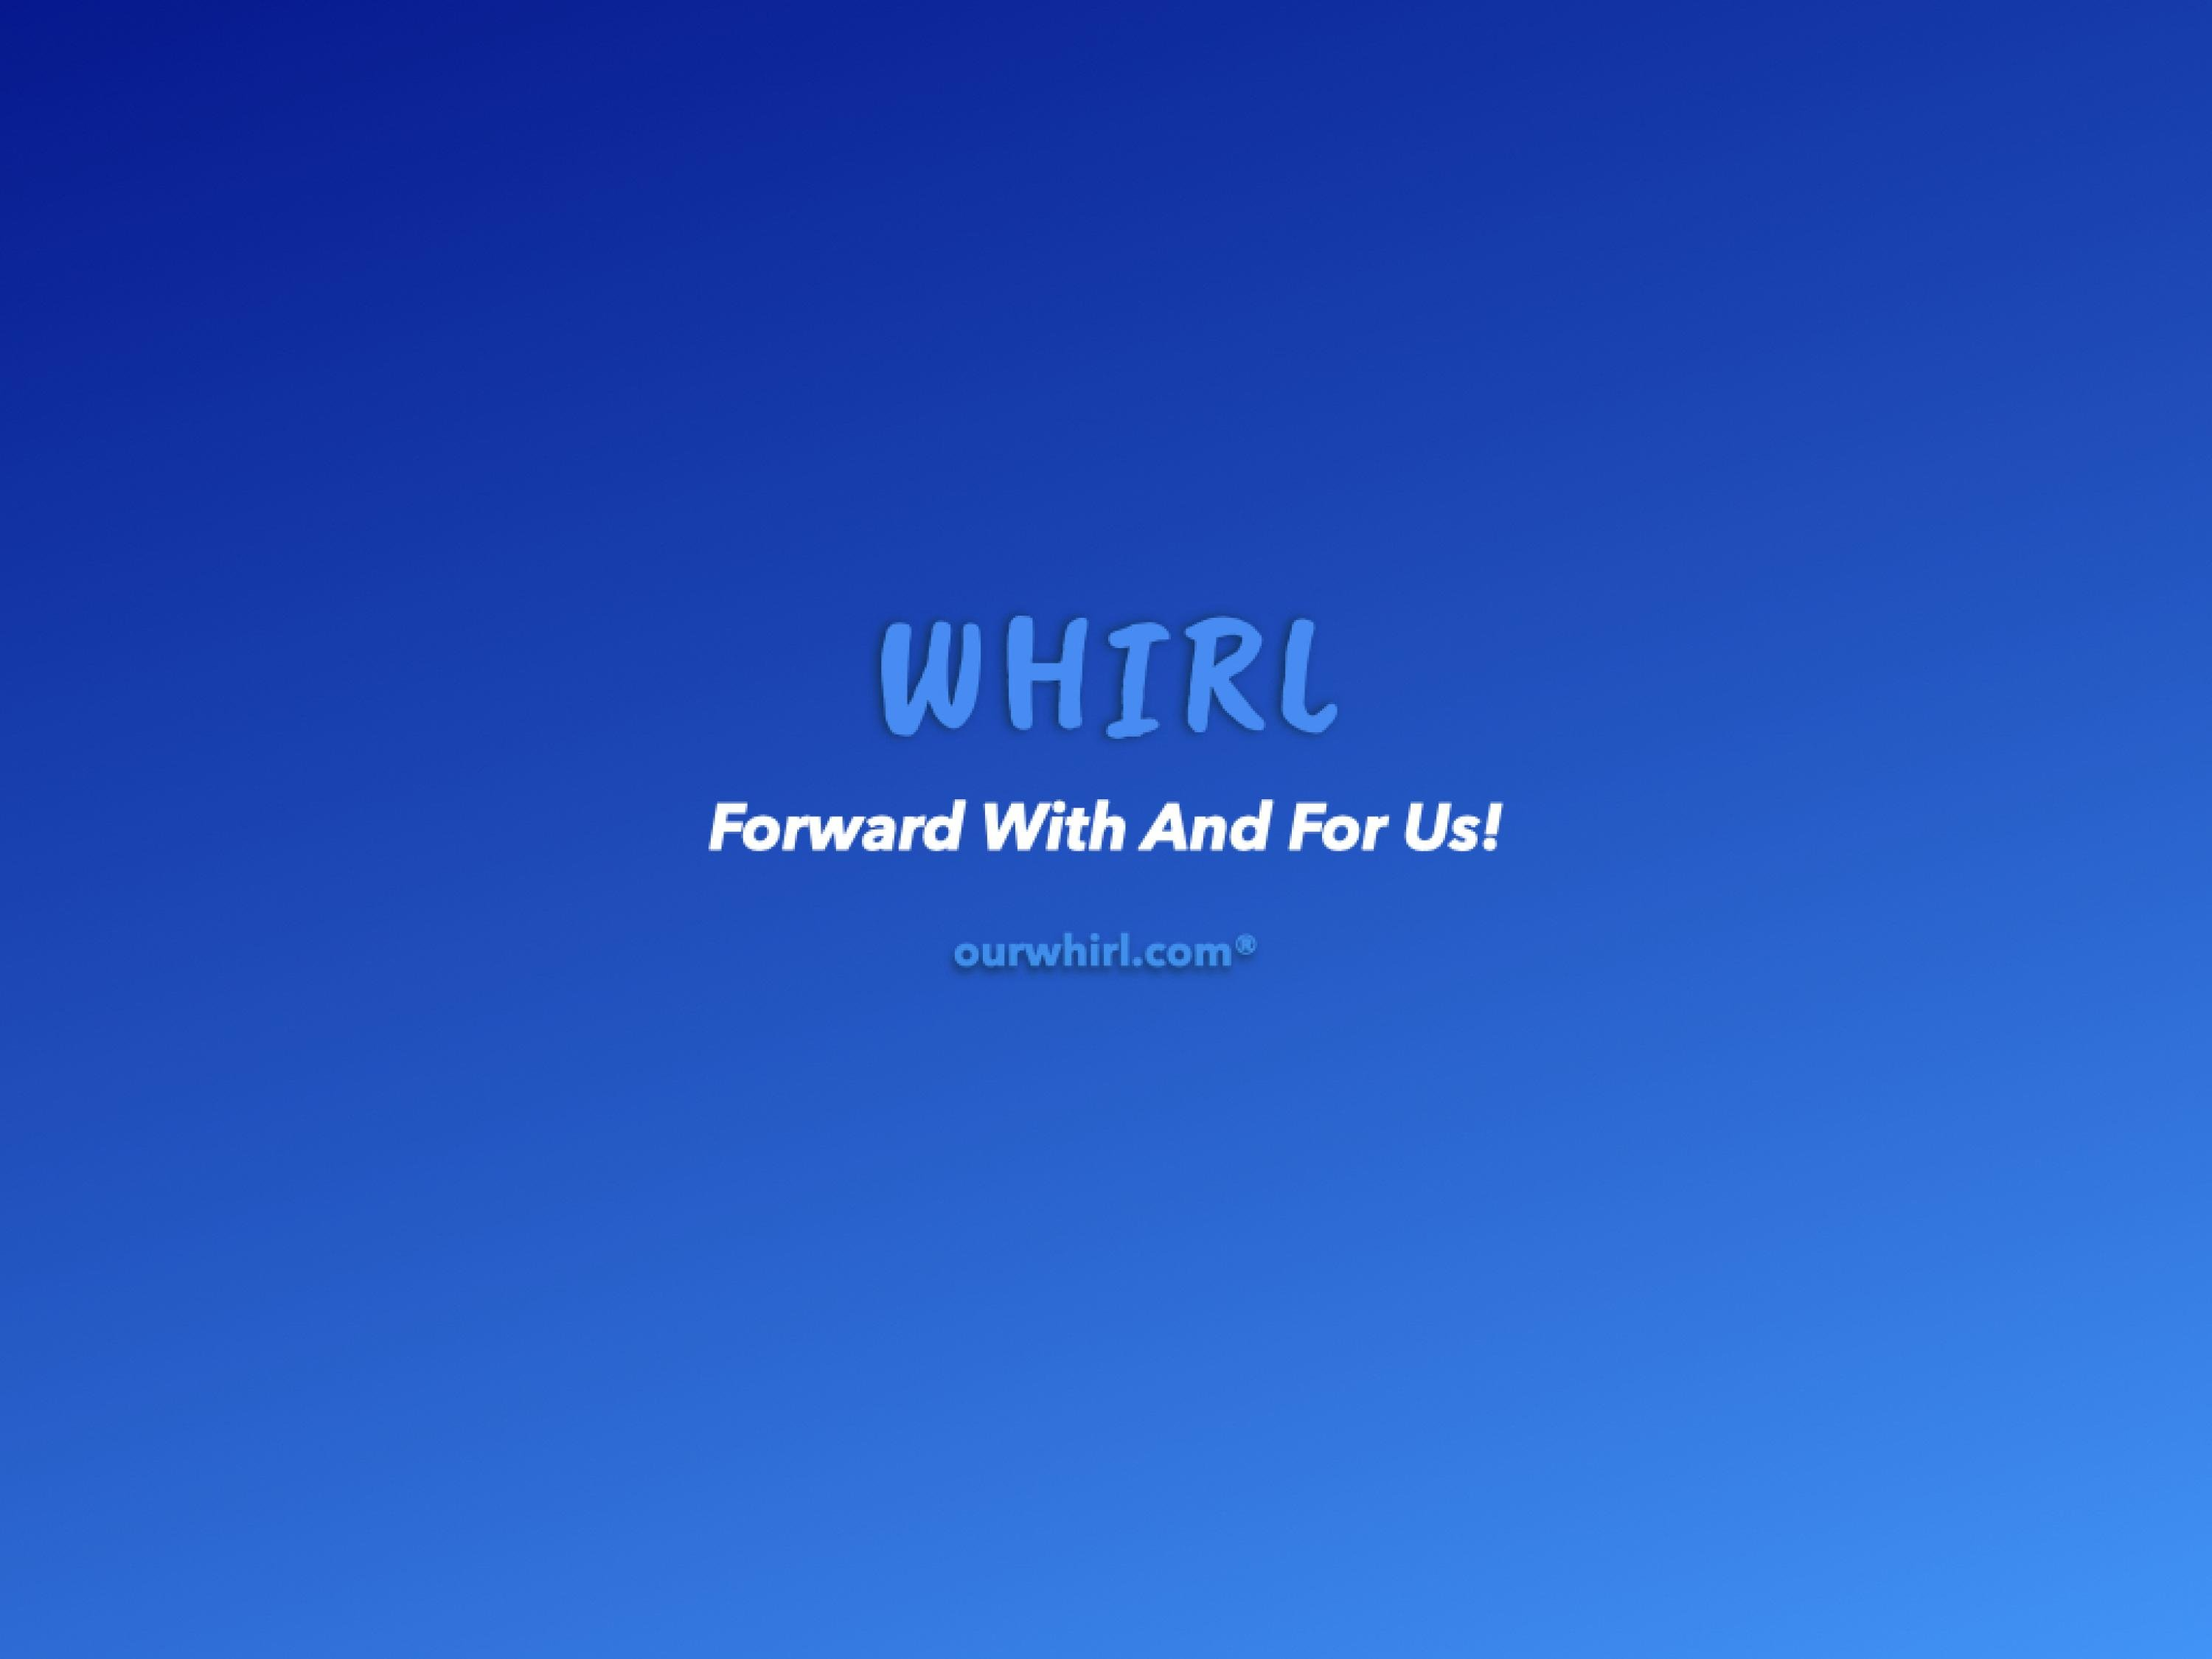 Our WHIRL Blog cover photo